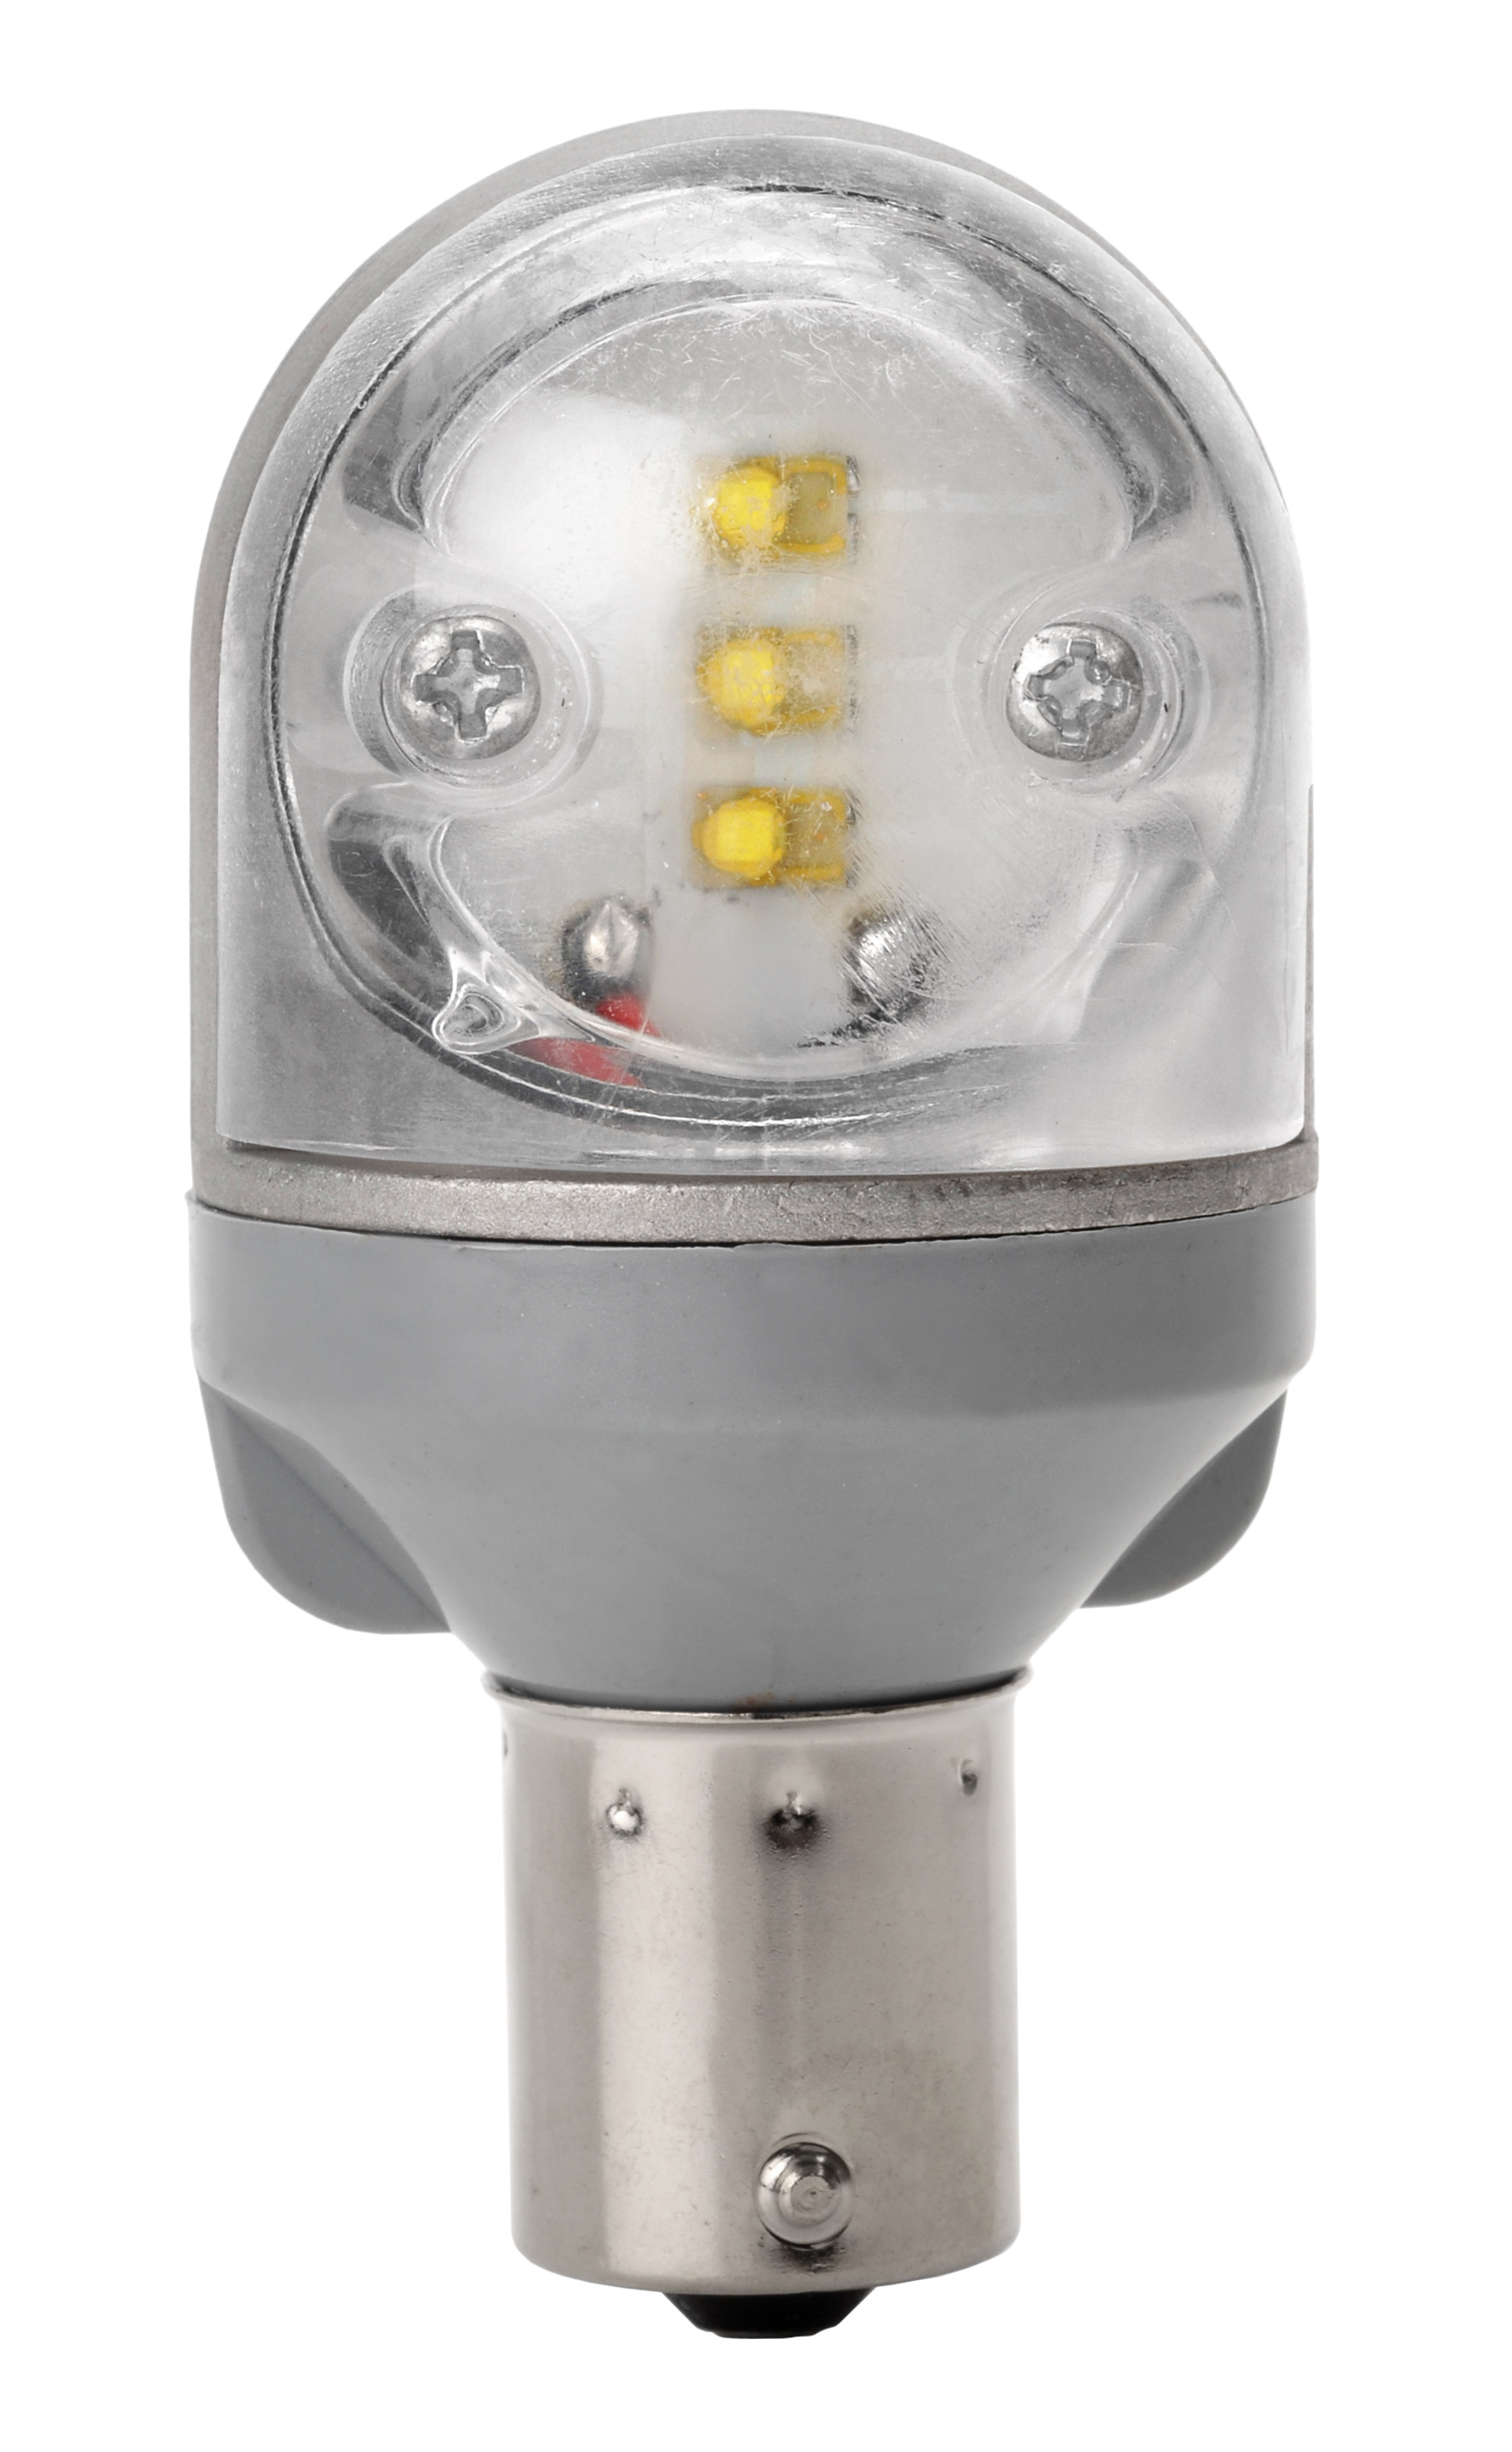 016-1141-400 AP Products Multi Purpose Light Bulb- LED Replacement